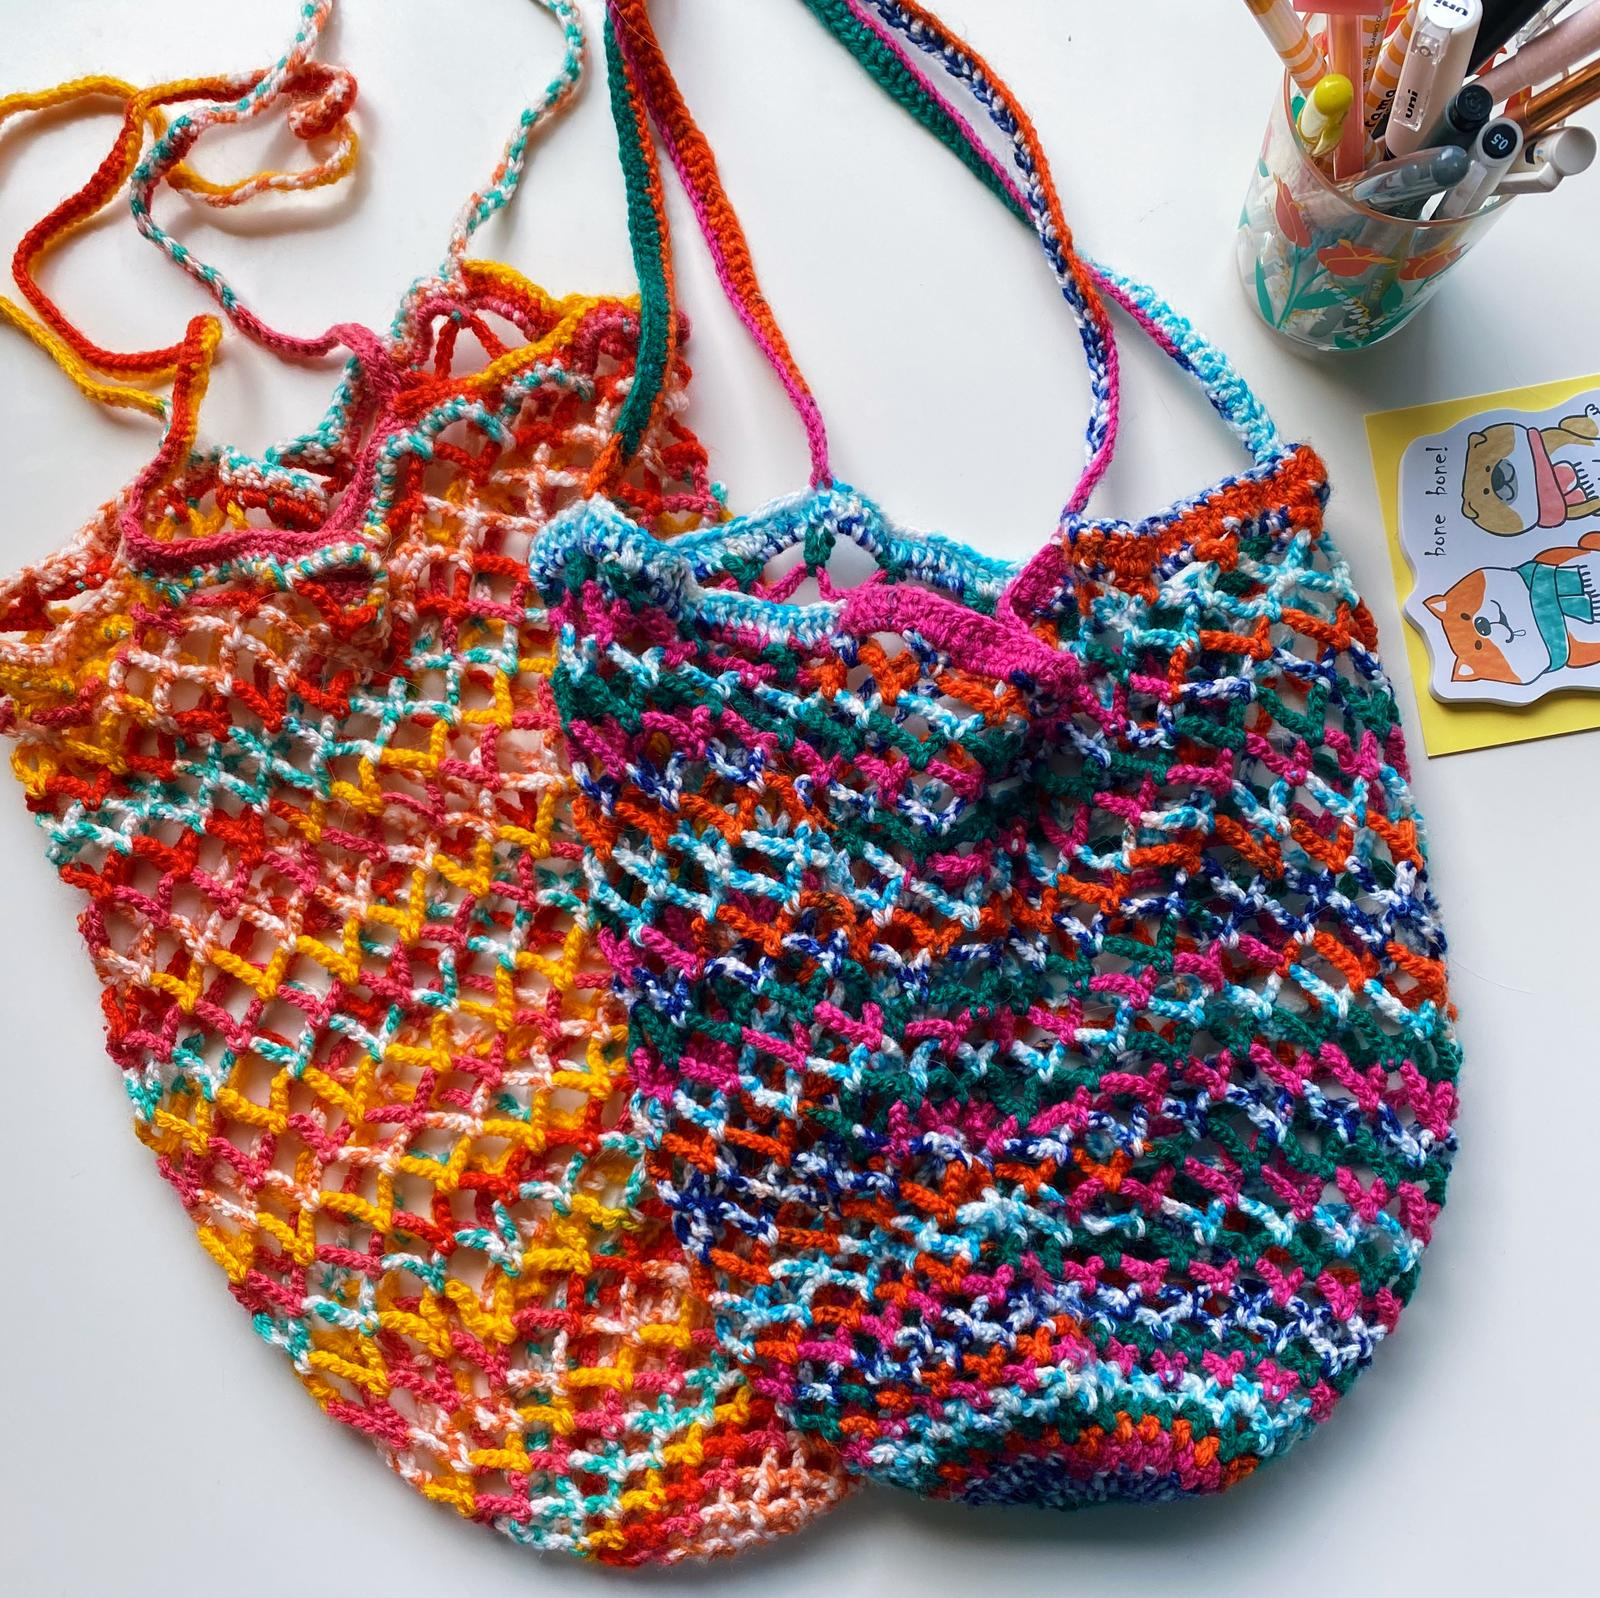 Crochet Bags by Sunnyday Yarns